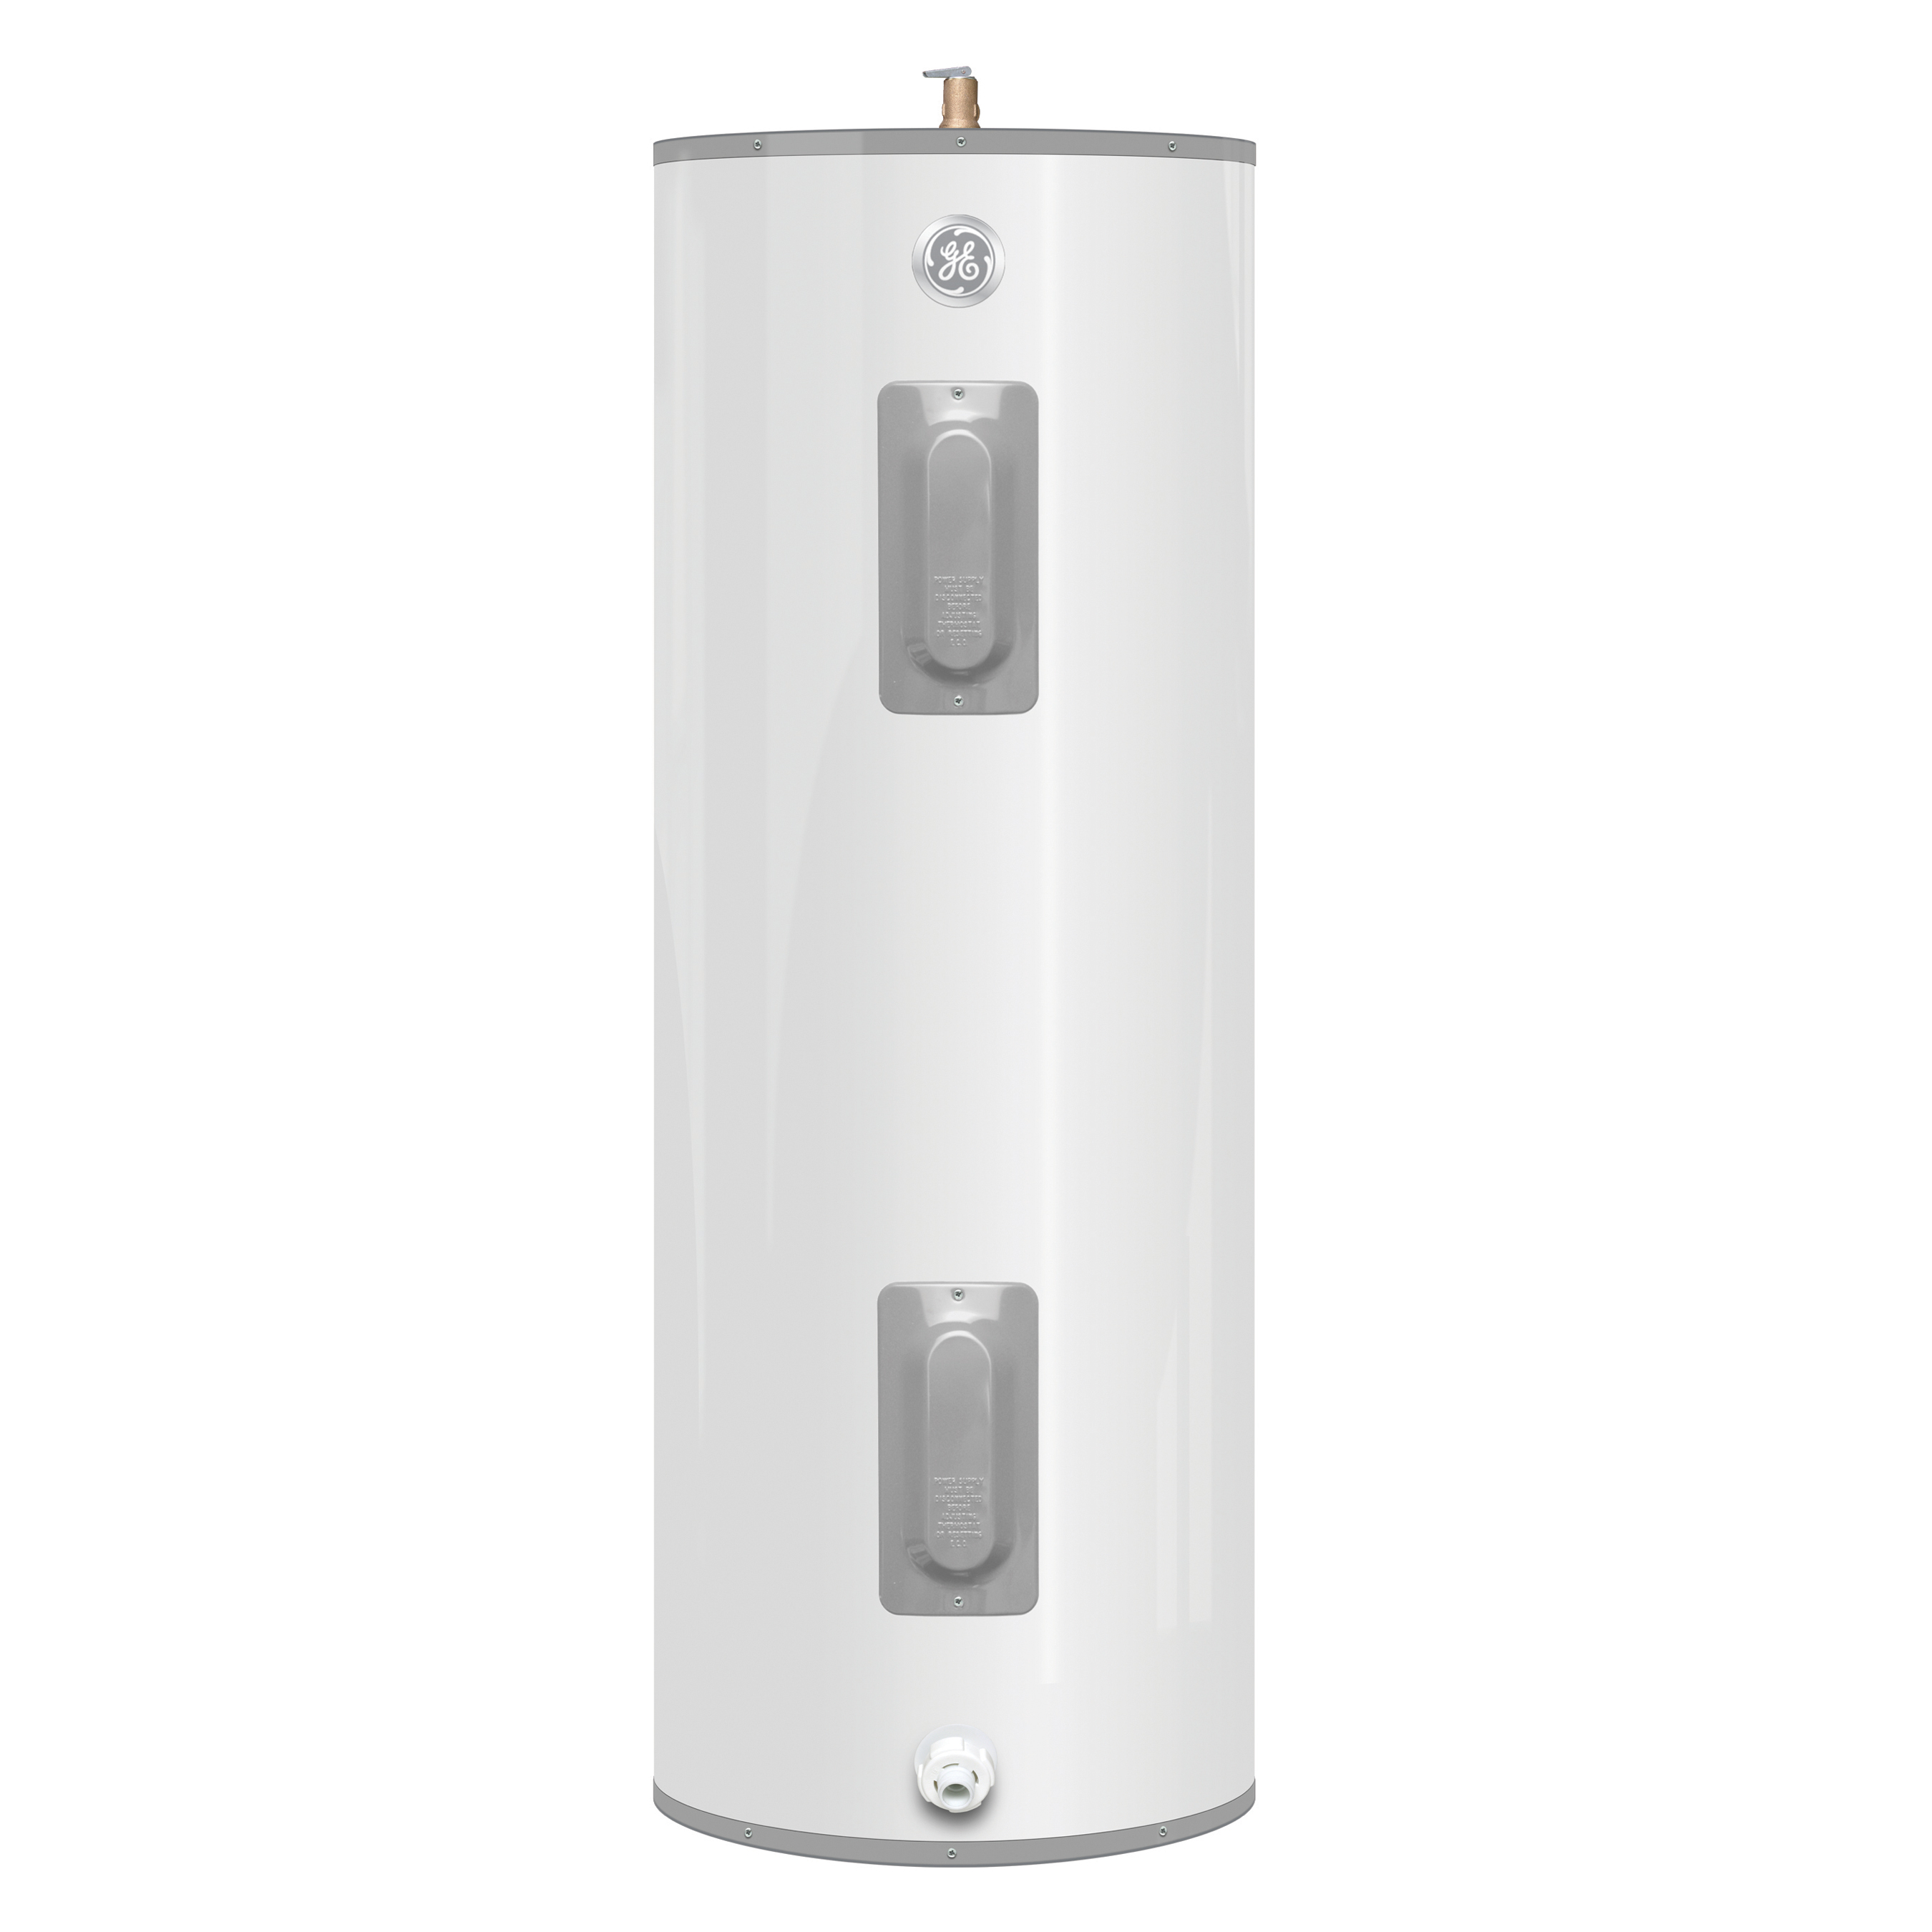 Ge 174 Electric Water Heater Ge50t06aag Ge Appliances